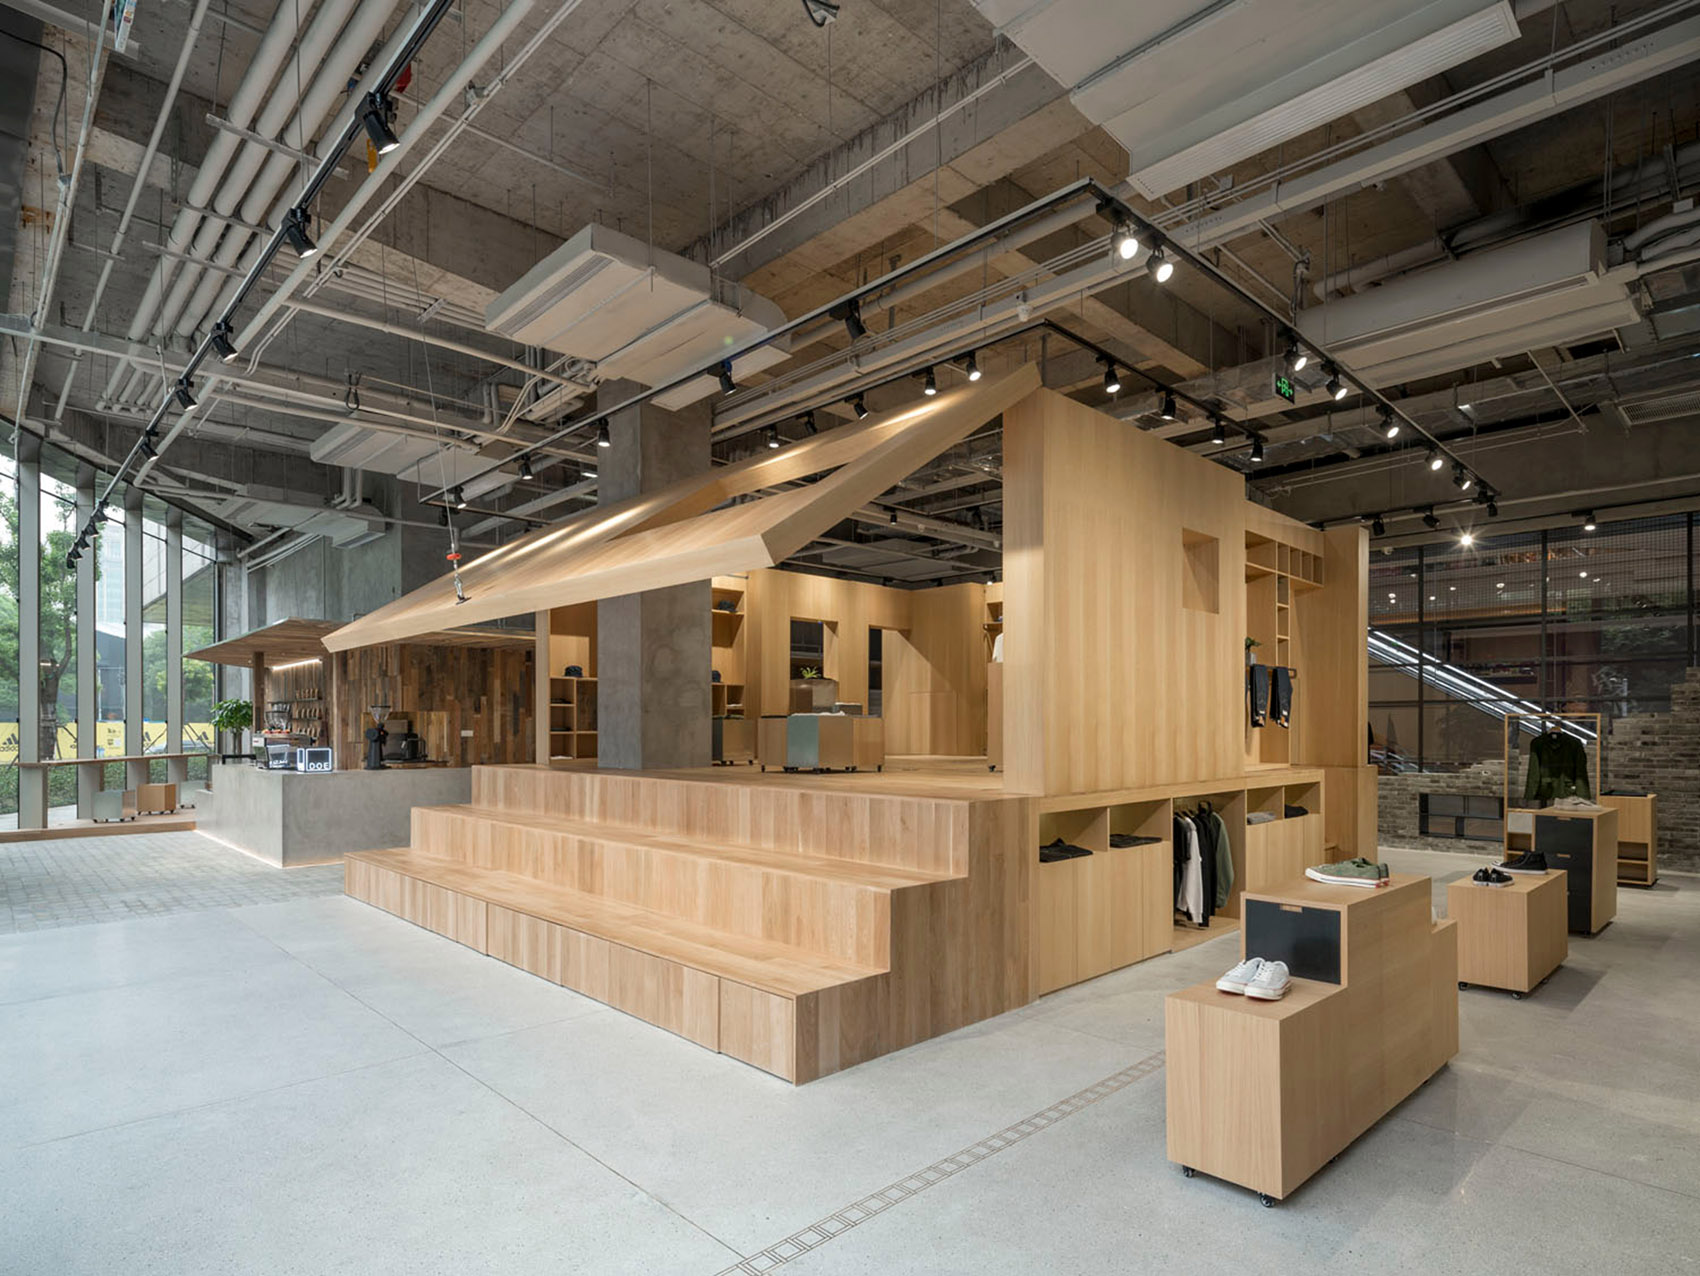 007-doe-store-in-shanghai-by-b-l-u-e-architecture-studio.jpg